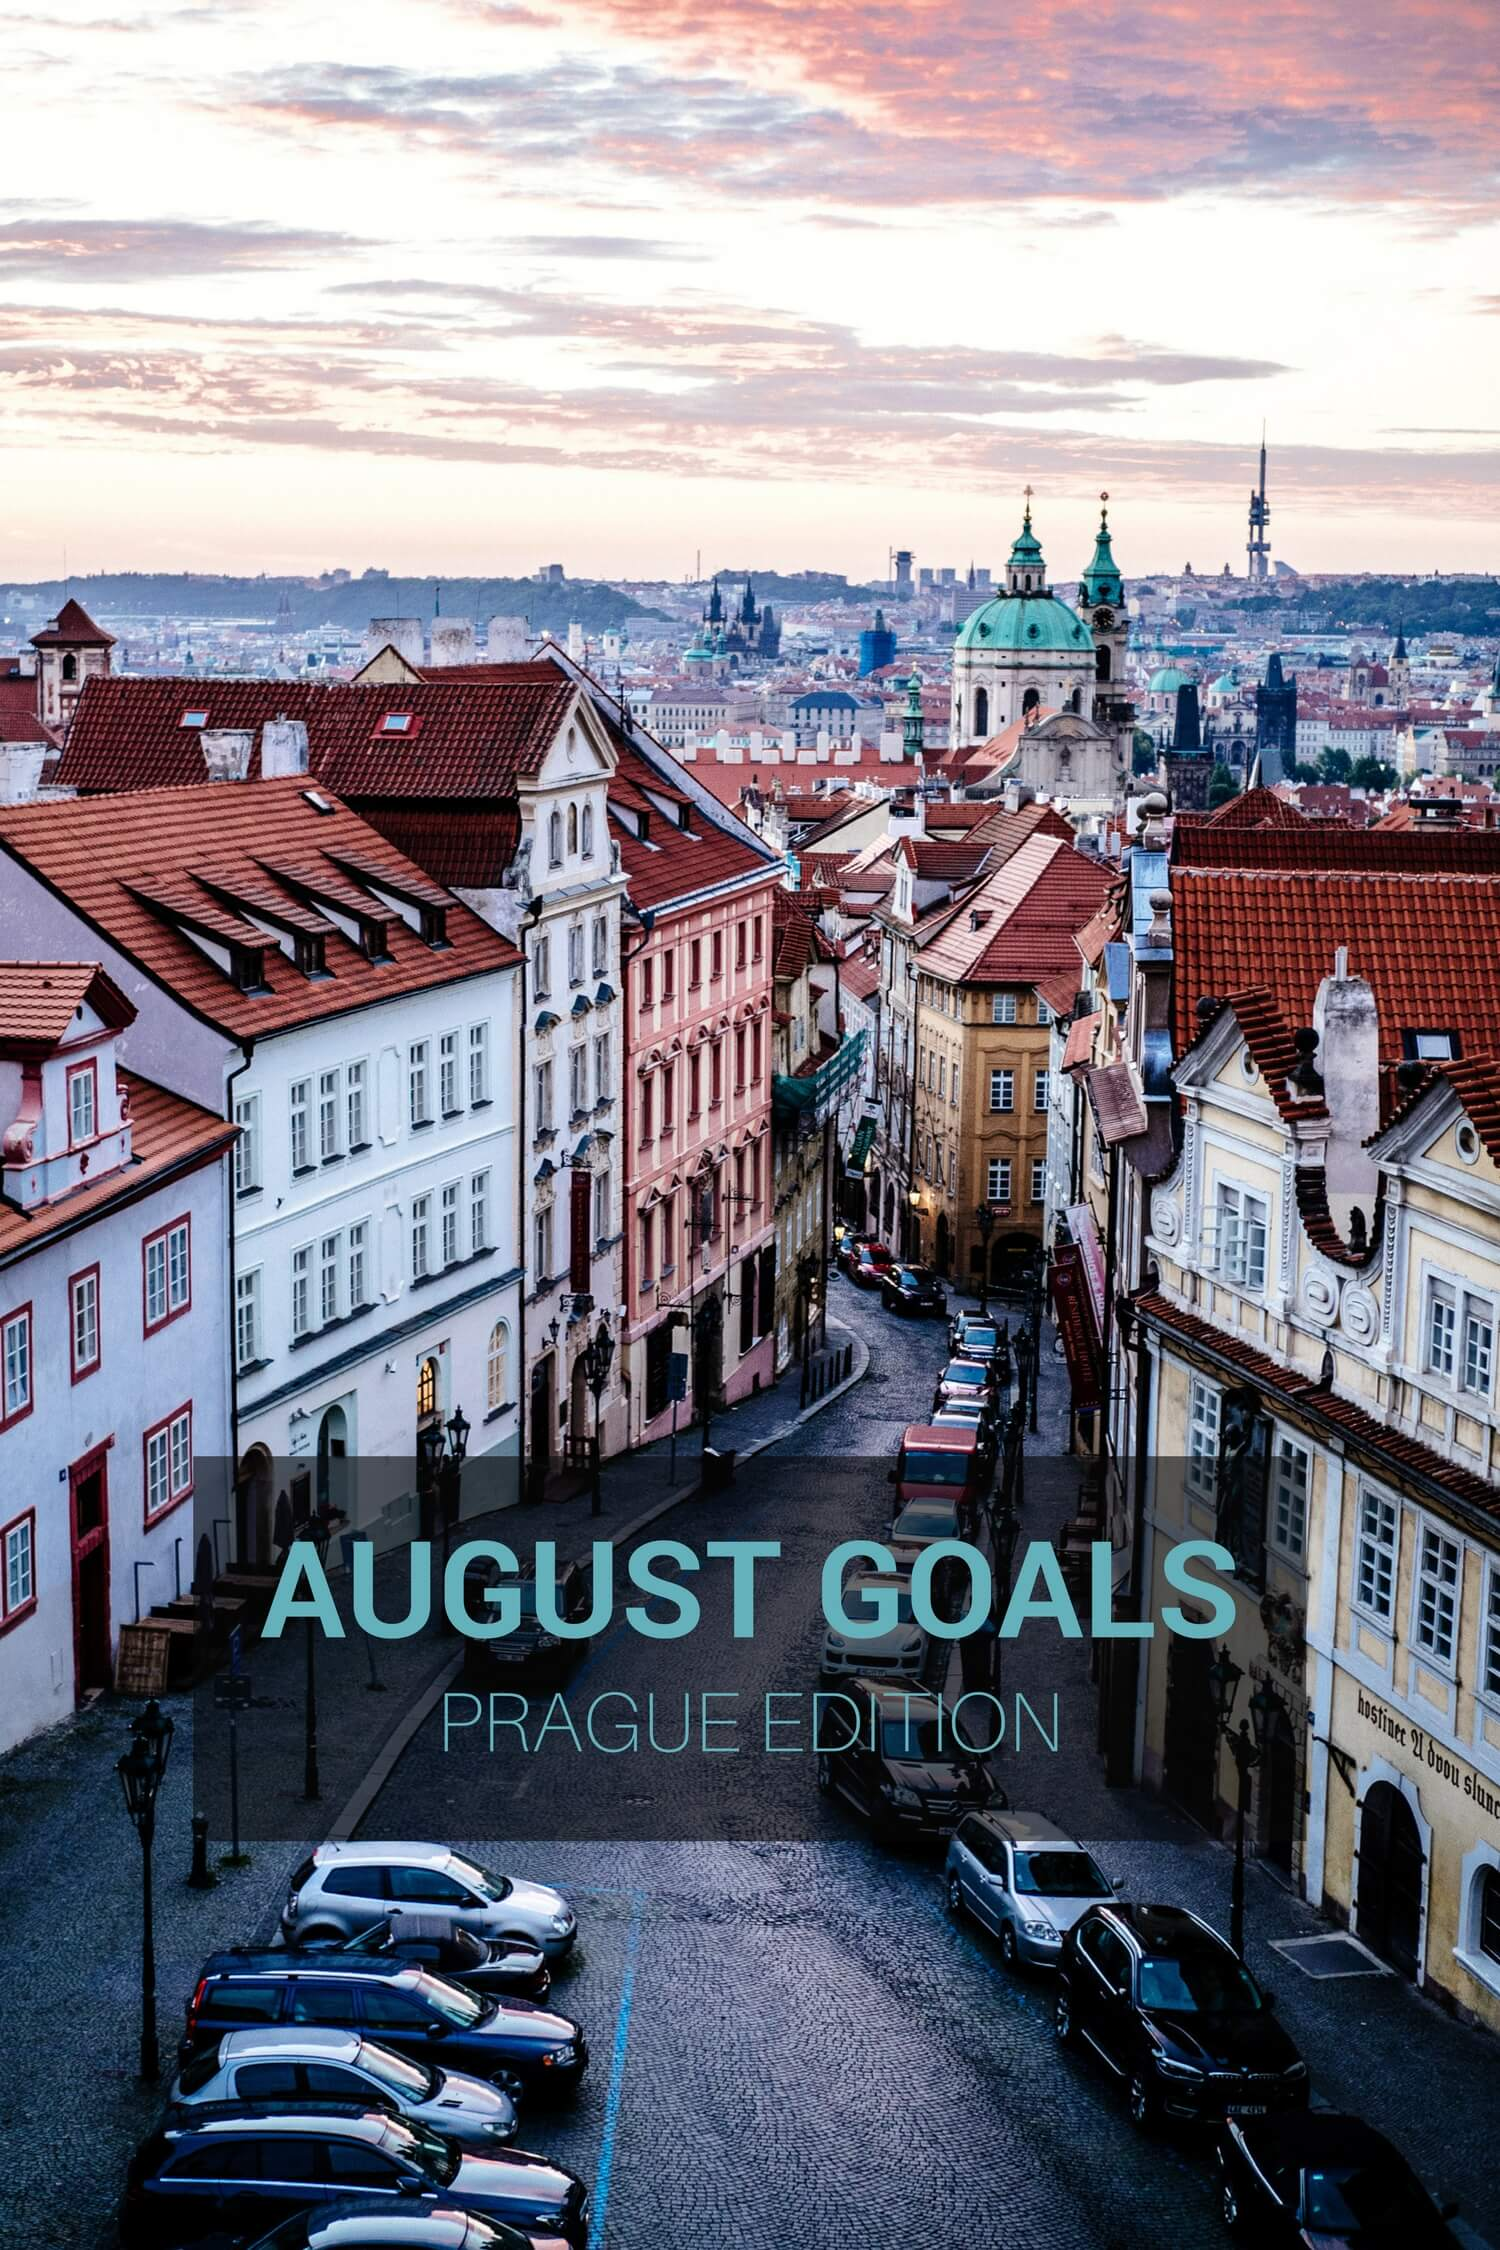 August Goals: Sunrise in Prague